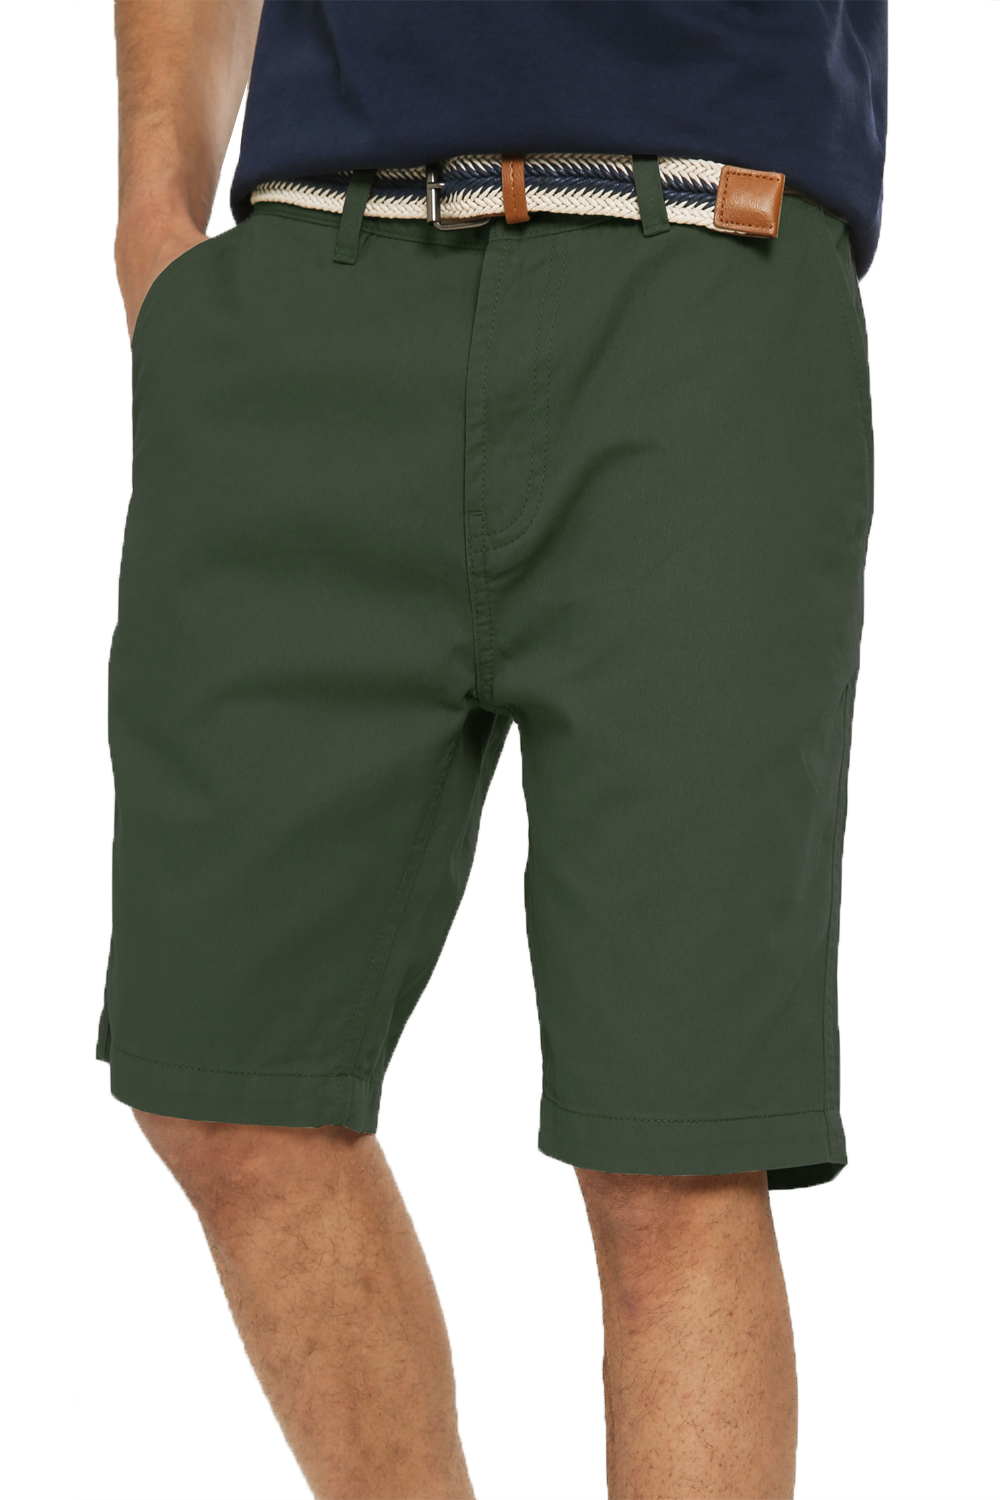 Threadbare-Mens-Slim-Fit-Belted-Chino-Shorts-Summer-Casual-Cotton-Smart-Bottoms thumbnail 30